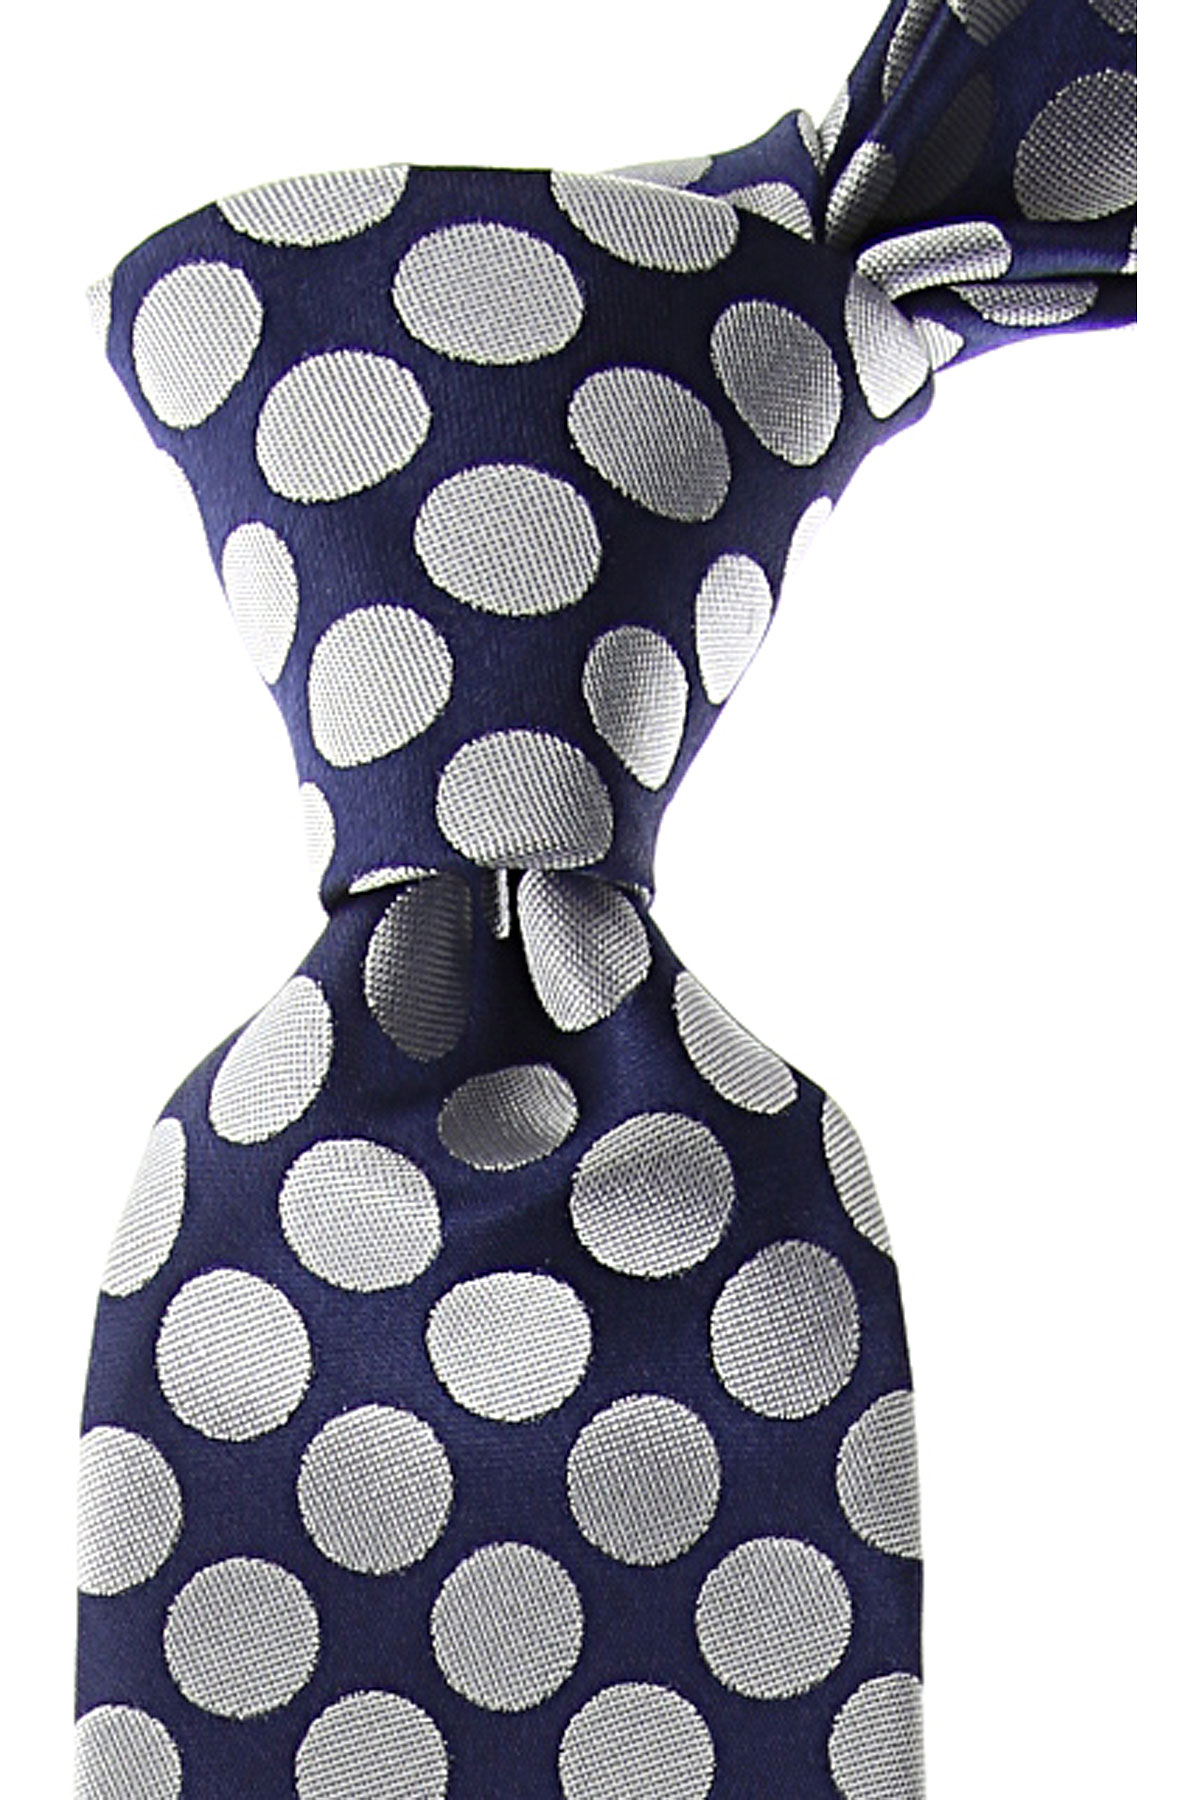 Canali Ties On Sale, Bluette, Silk, 2019